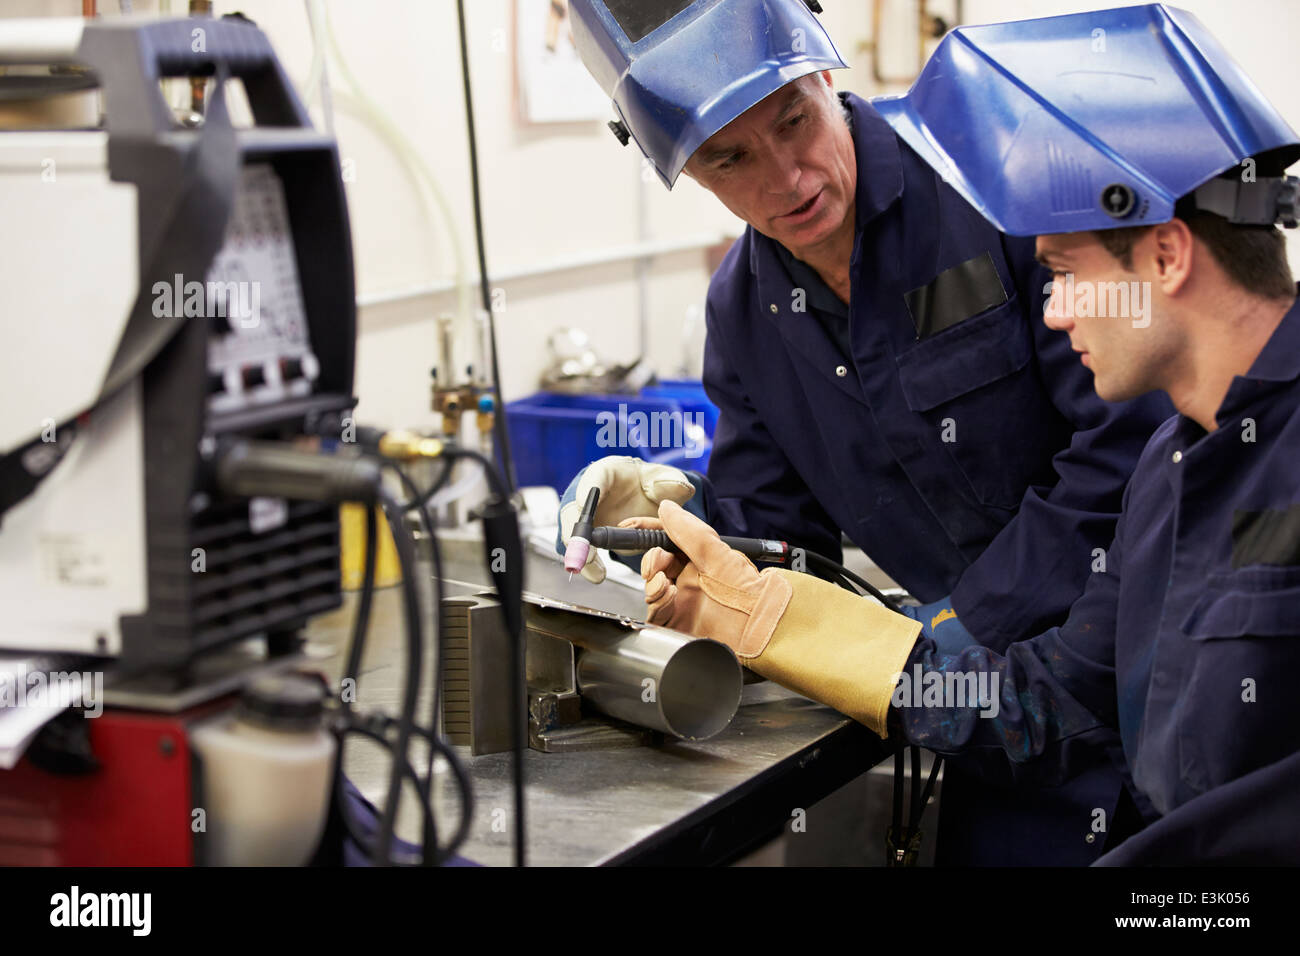 Engineer Teaching Apprentice To Use TIG Welding Machine - Stock Image